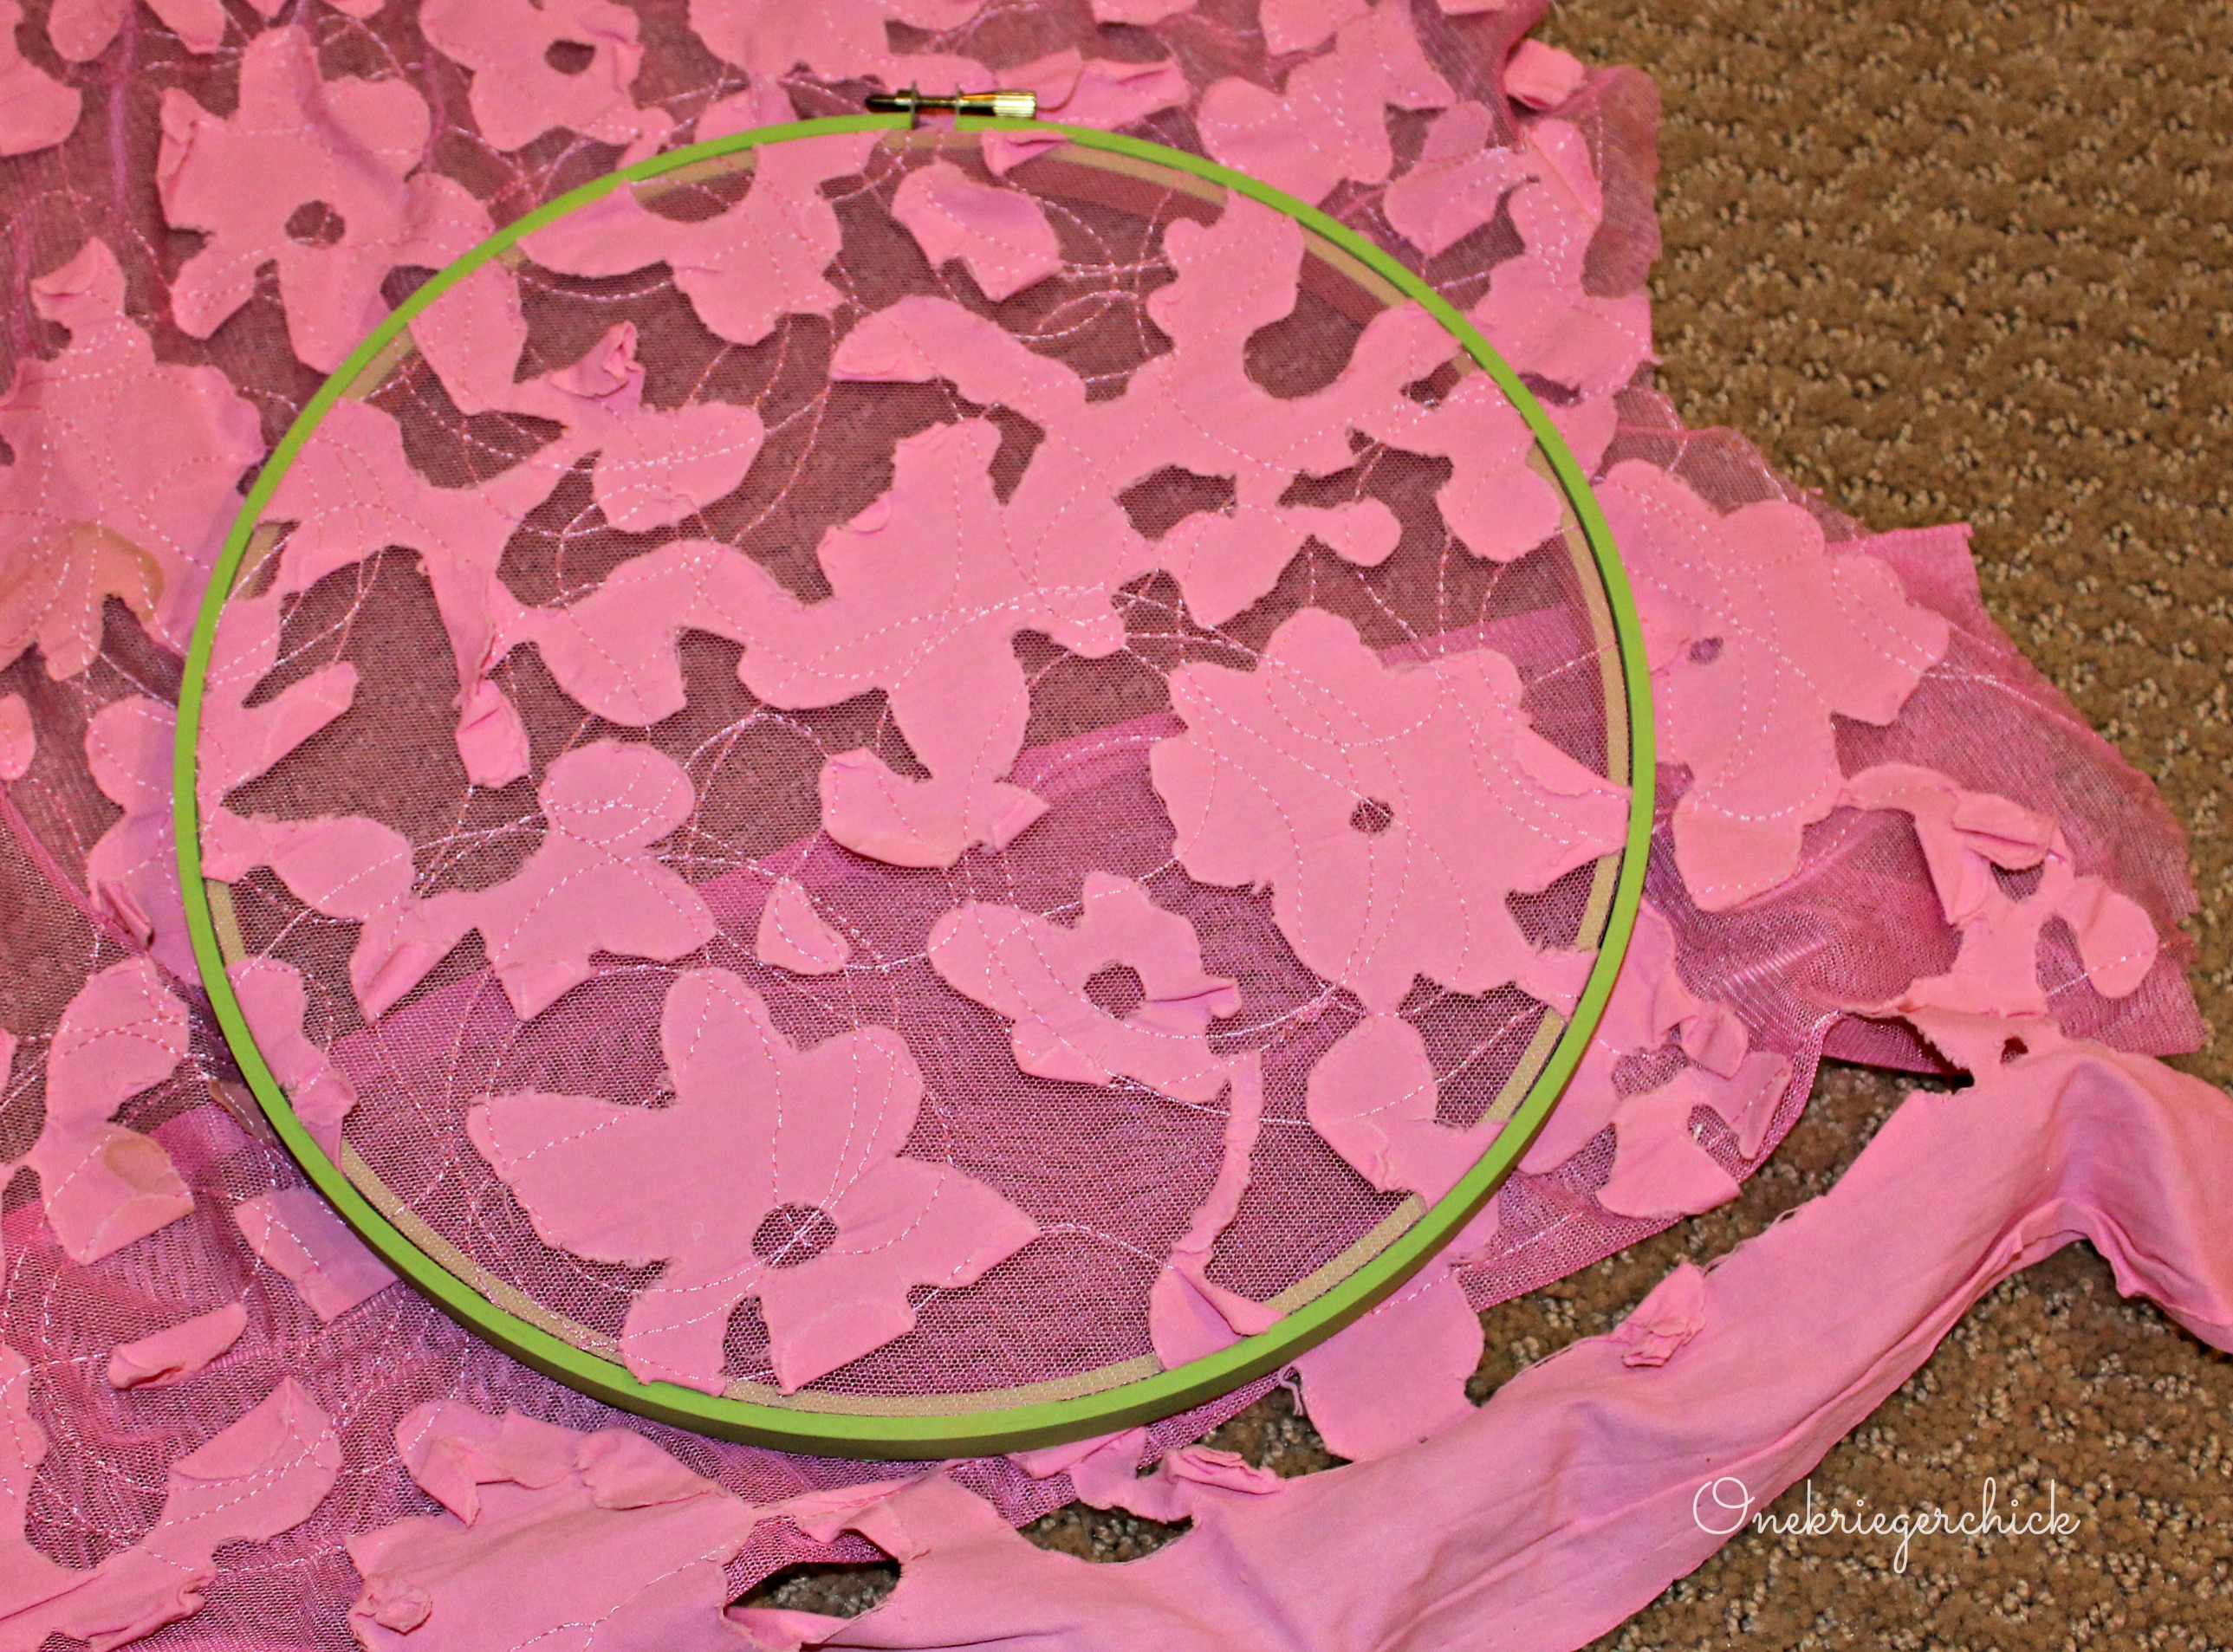 fabric and hoop {Onekriegerchick.com}